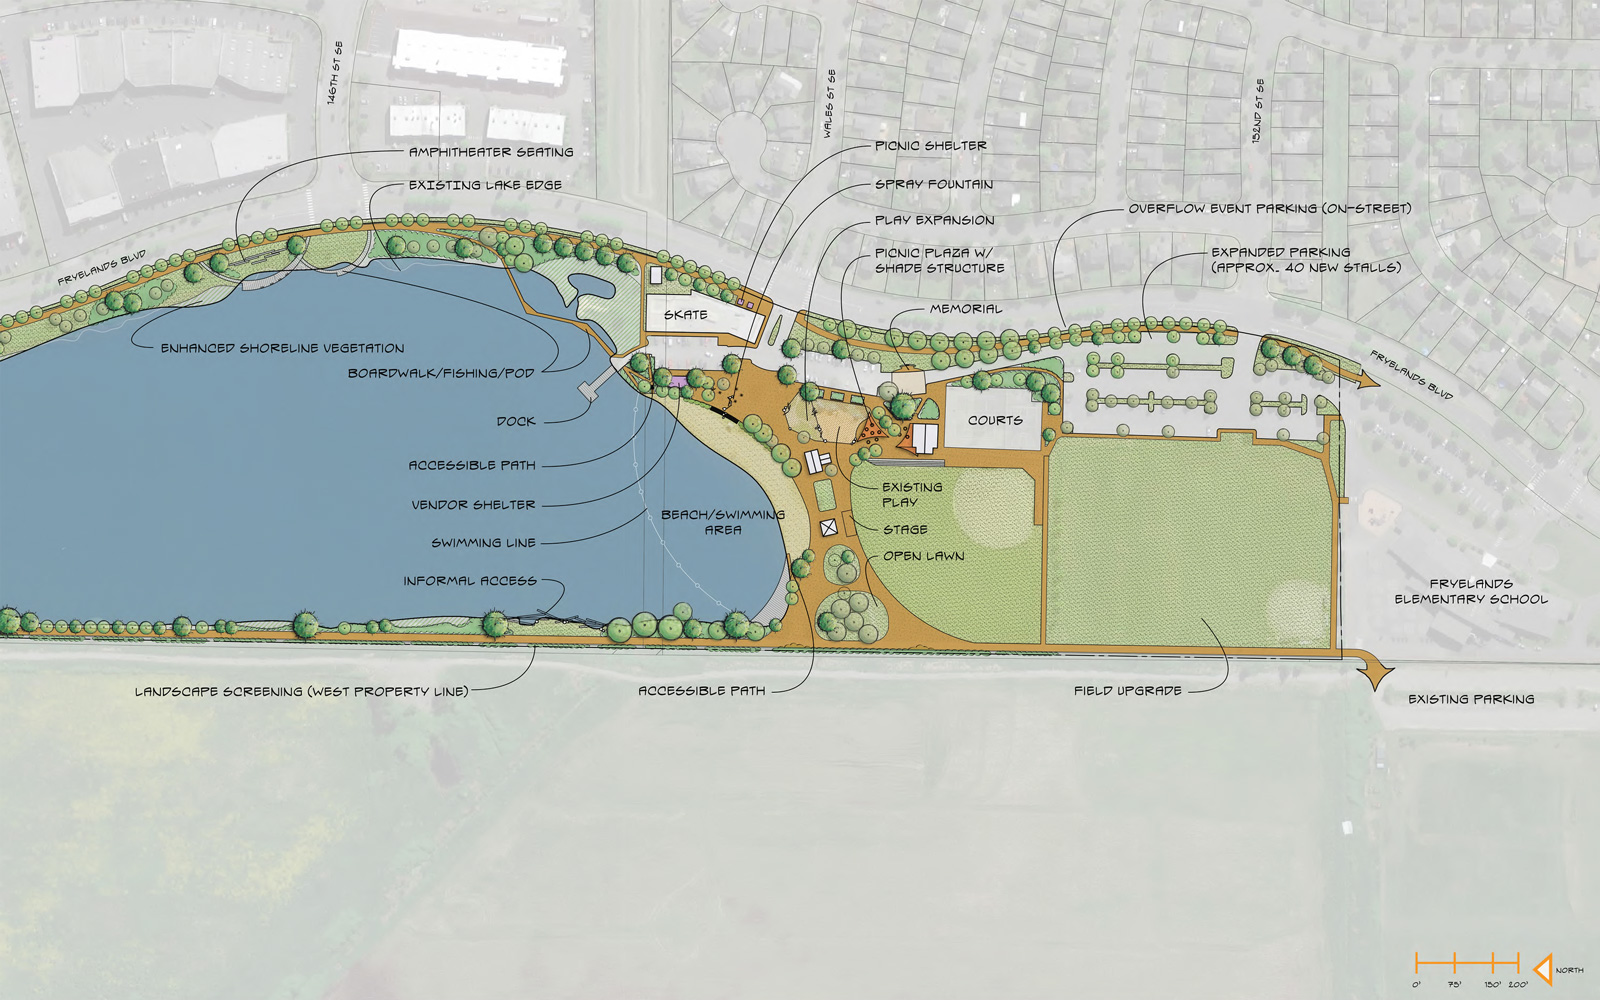 "OK, let's check out the <strong>latest plans</strong> for Lake Tye. Here's a view of the <strong>south end</strong>, where most of the events and organized activities would take place. This concept proposes to expand the beach, make the water more accessible, include a dock and fishing areas, expand parking, facilitate concerts and other events, expand the playground and spray fountain and provide more picnic areas. <a href=""https://drive.google.com/file/d/0BxrVDQaWMHGdWmtCX3M4NzhlLXM/view?usp=sharing"" rel=""nofollow"" target=""_blank"">Click here </a>to see an enlarged view in a new window. <br><br>"